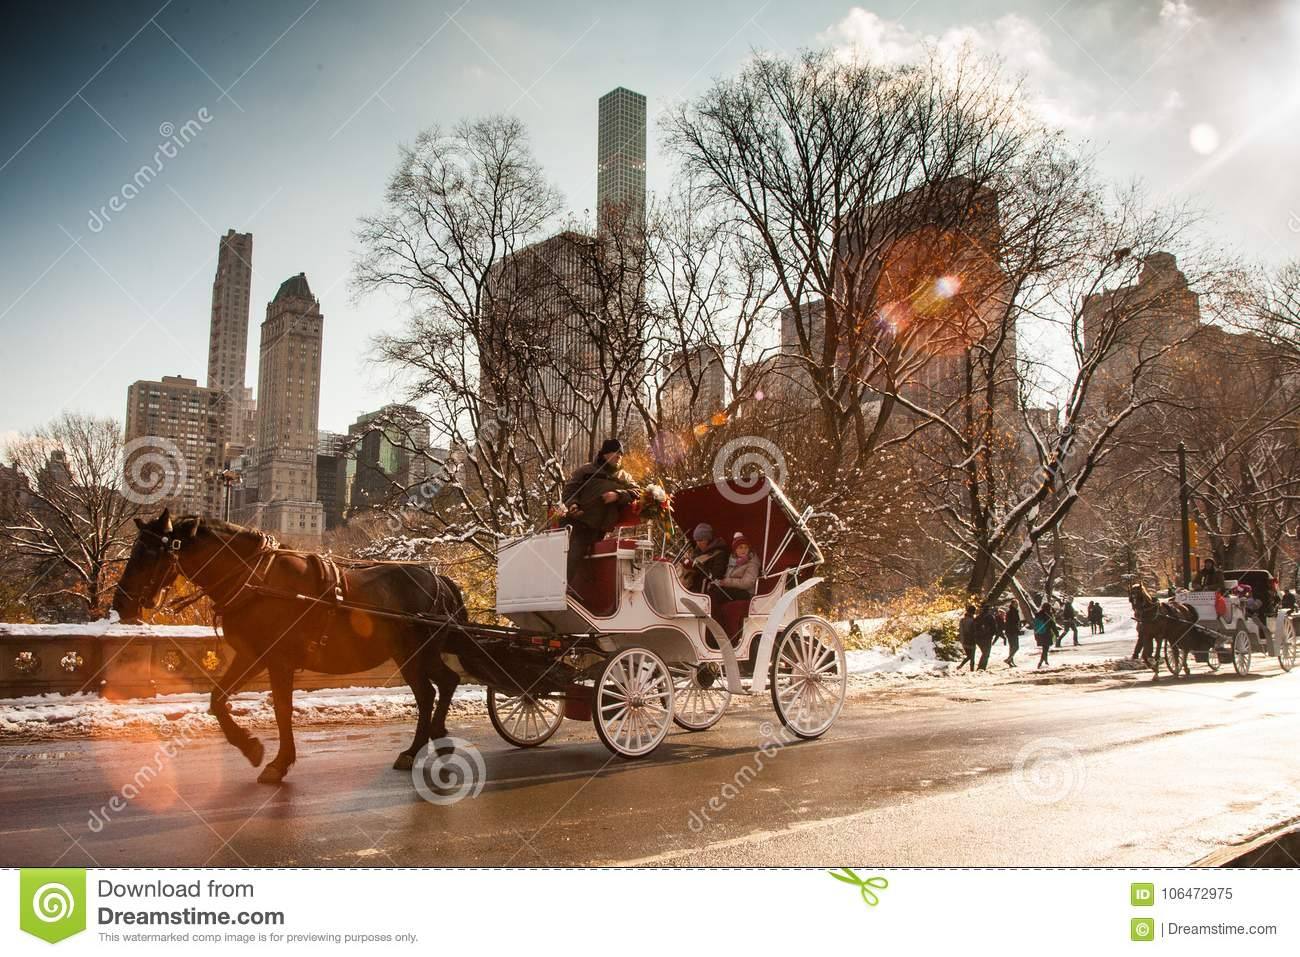 Horse Carriage Ride Central Park NYC